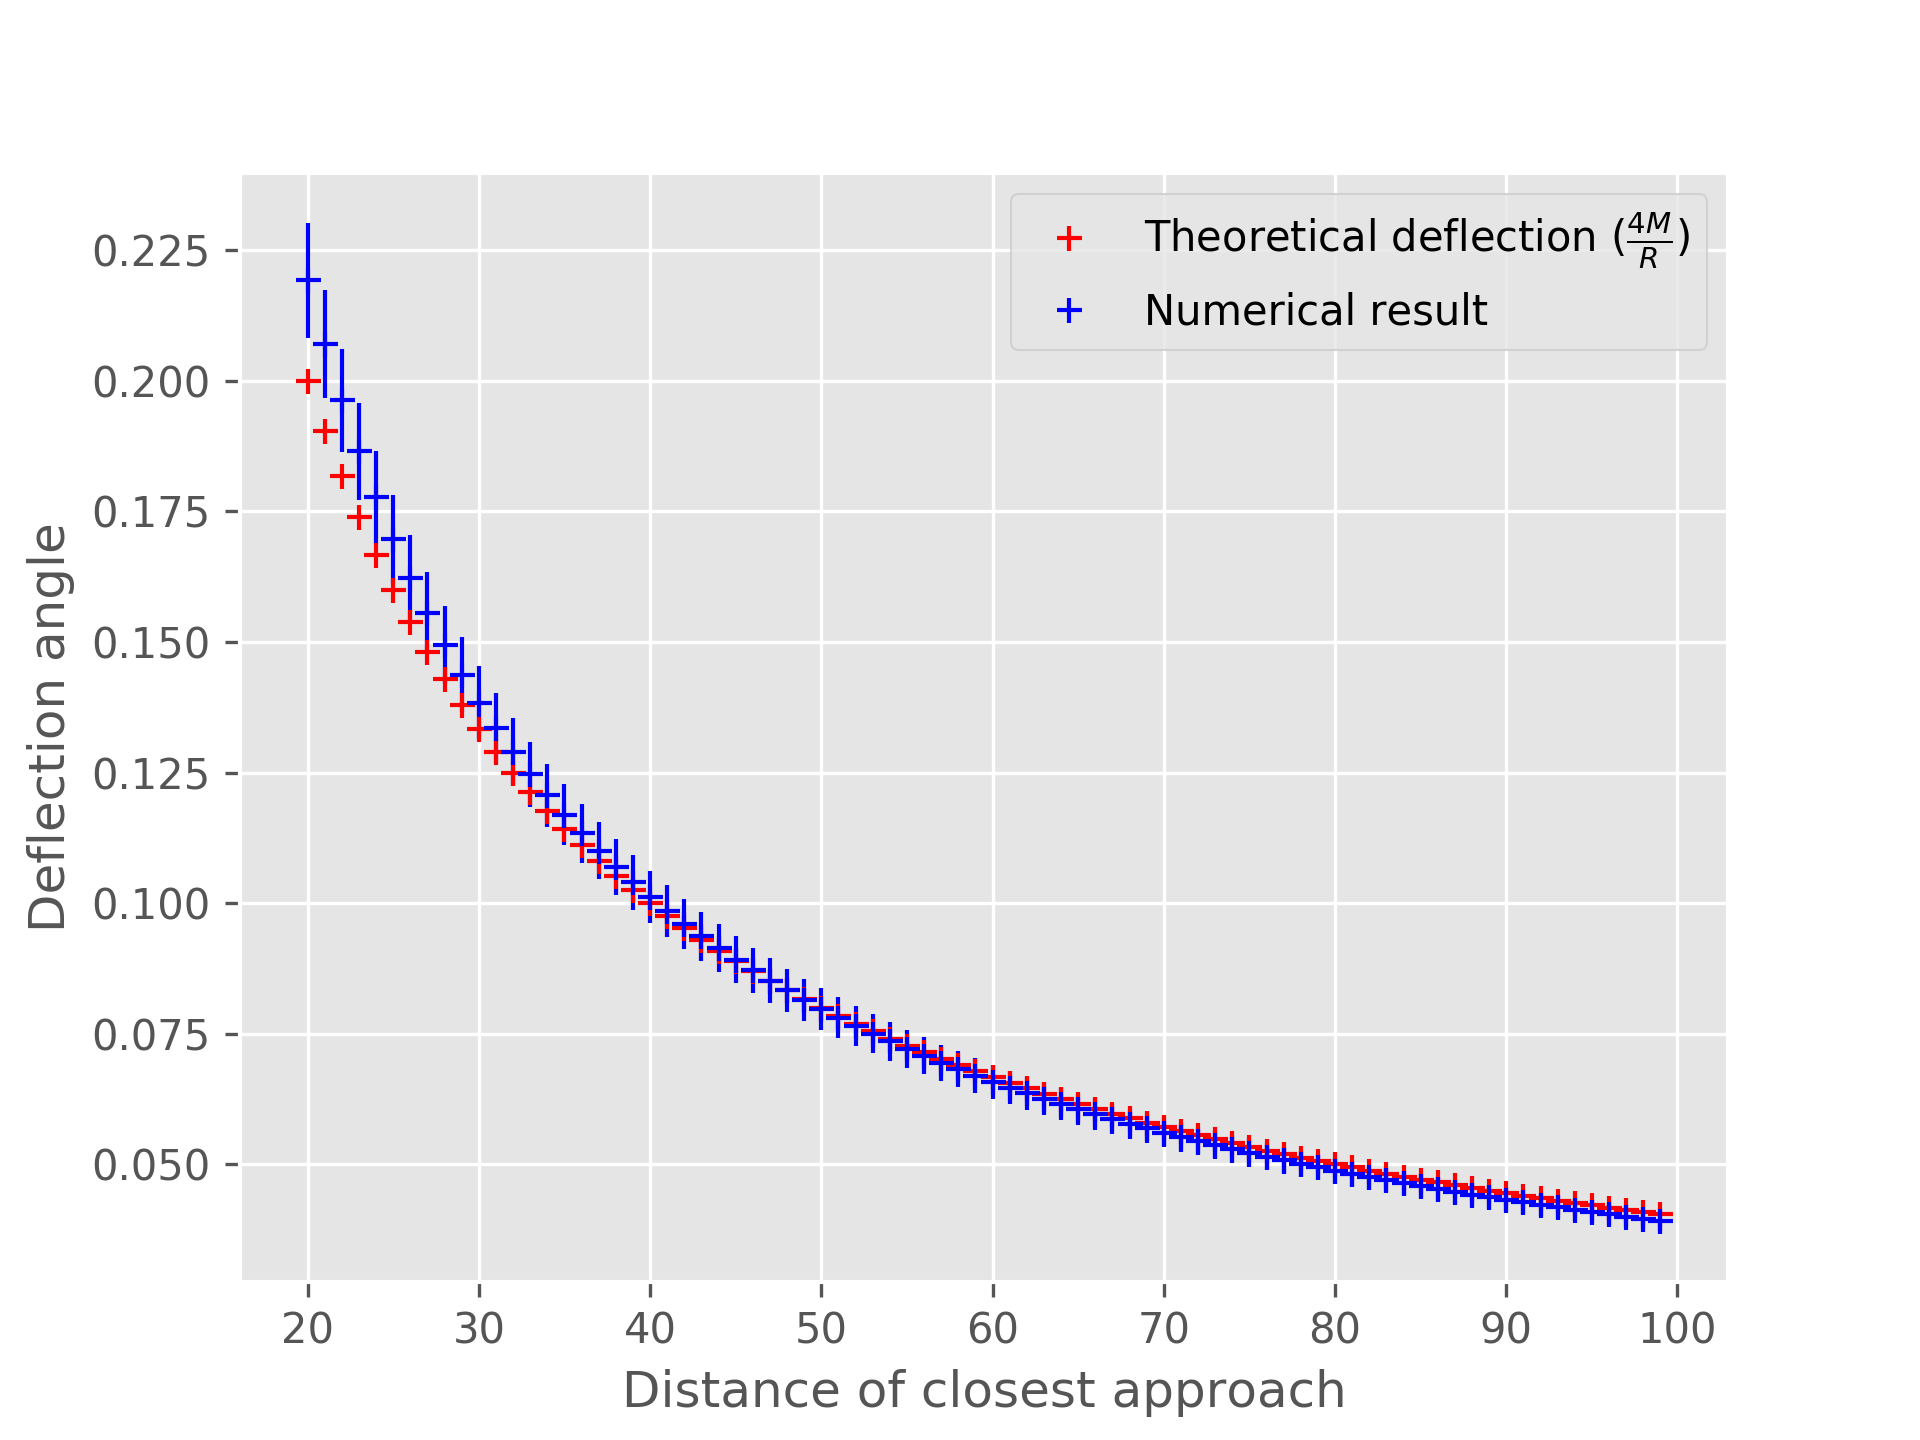 Numerical deflection angle vs theoretical deflection